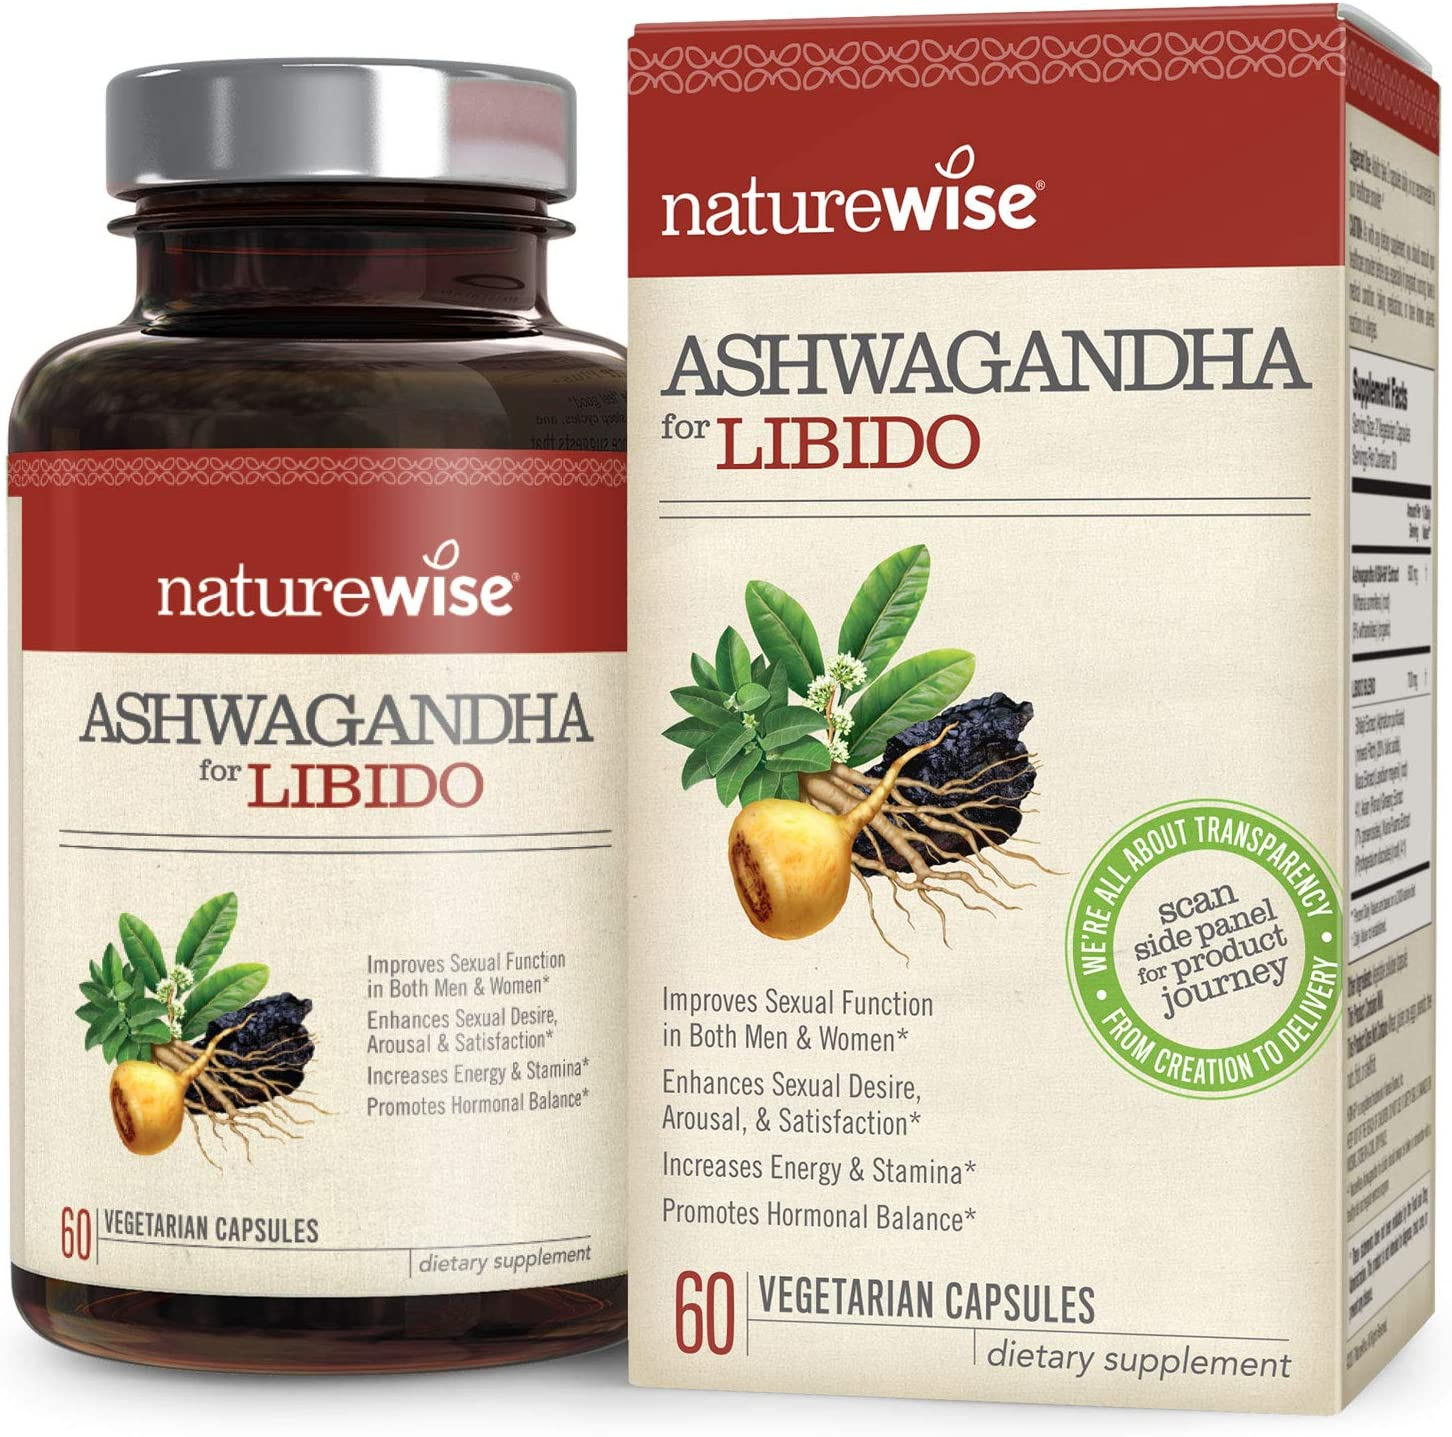 NatureWise Ashwagandha for Libido KSM 66 Organic Ashwagandha Maca, Ginseng, Shilajit, Muira Puama for Sexual Health, Energy Hormonal Balance Watch Video in Images 1 Month – 60 Count